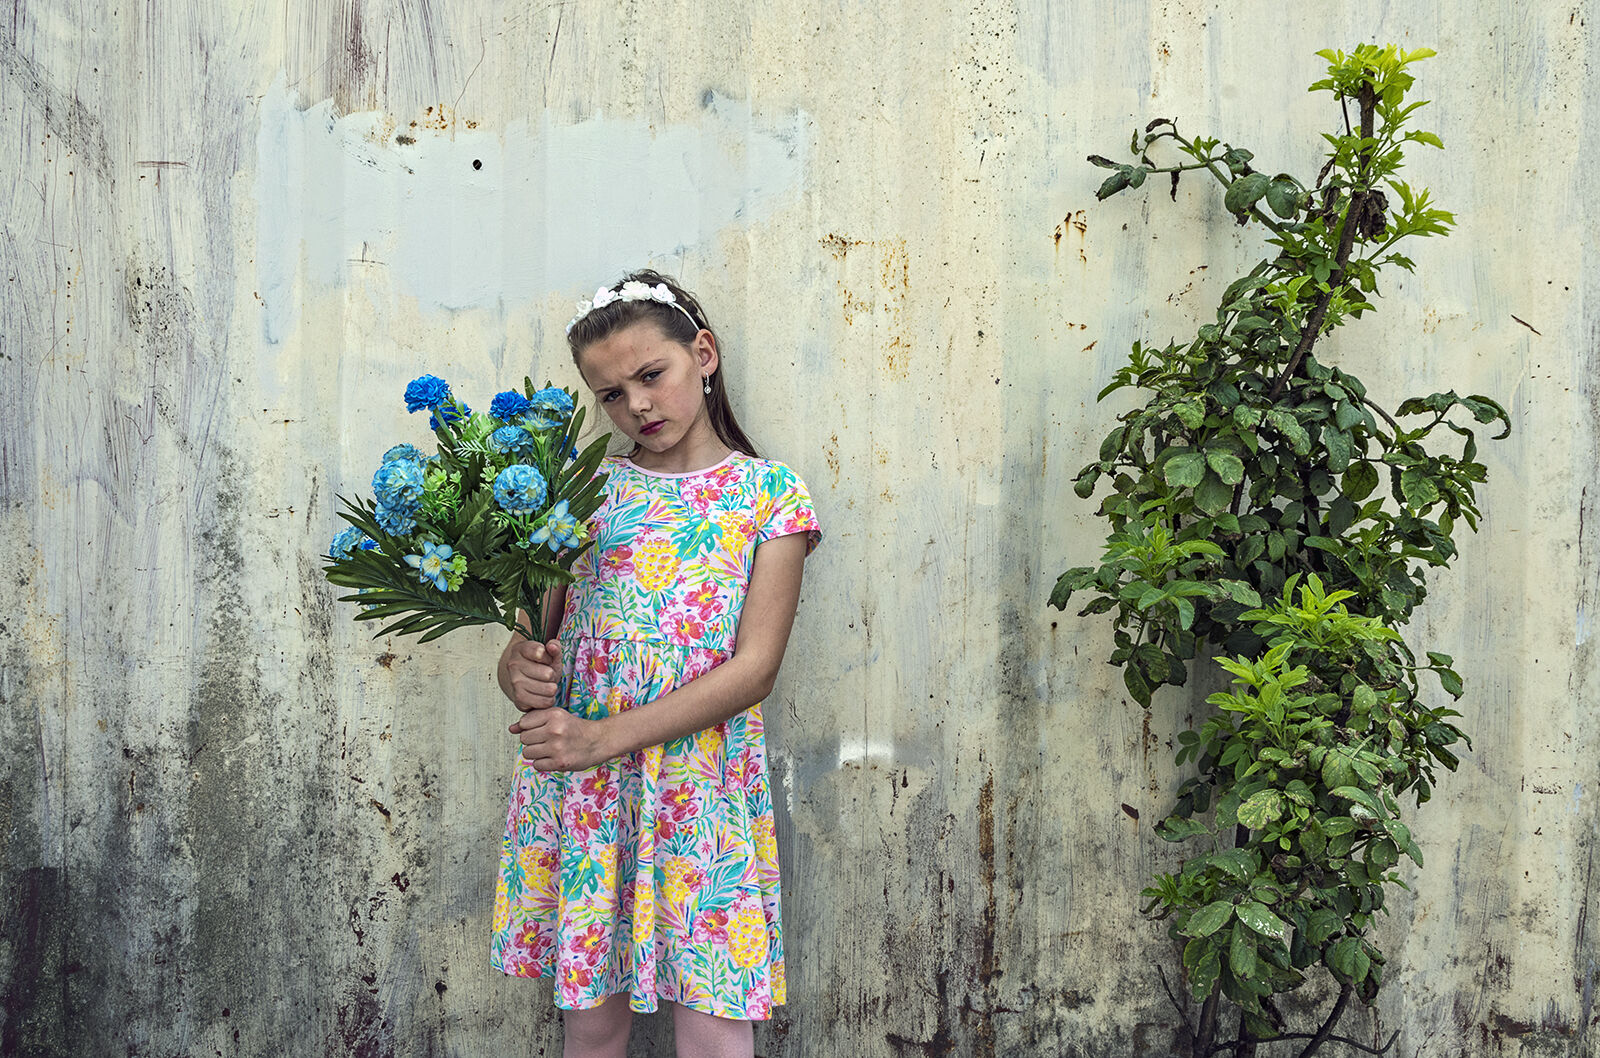 Alesha, Blue Flowers, Dublin, Ireland 2020